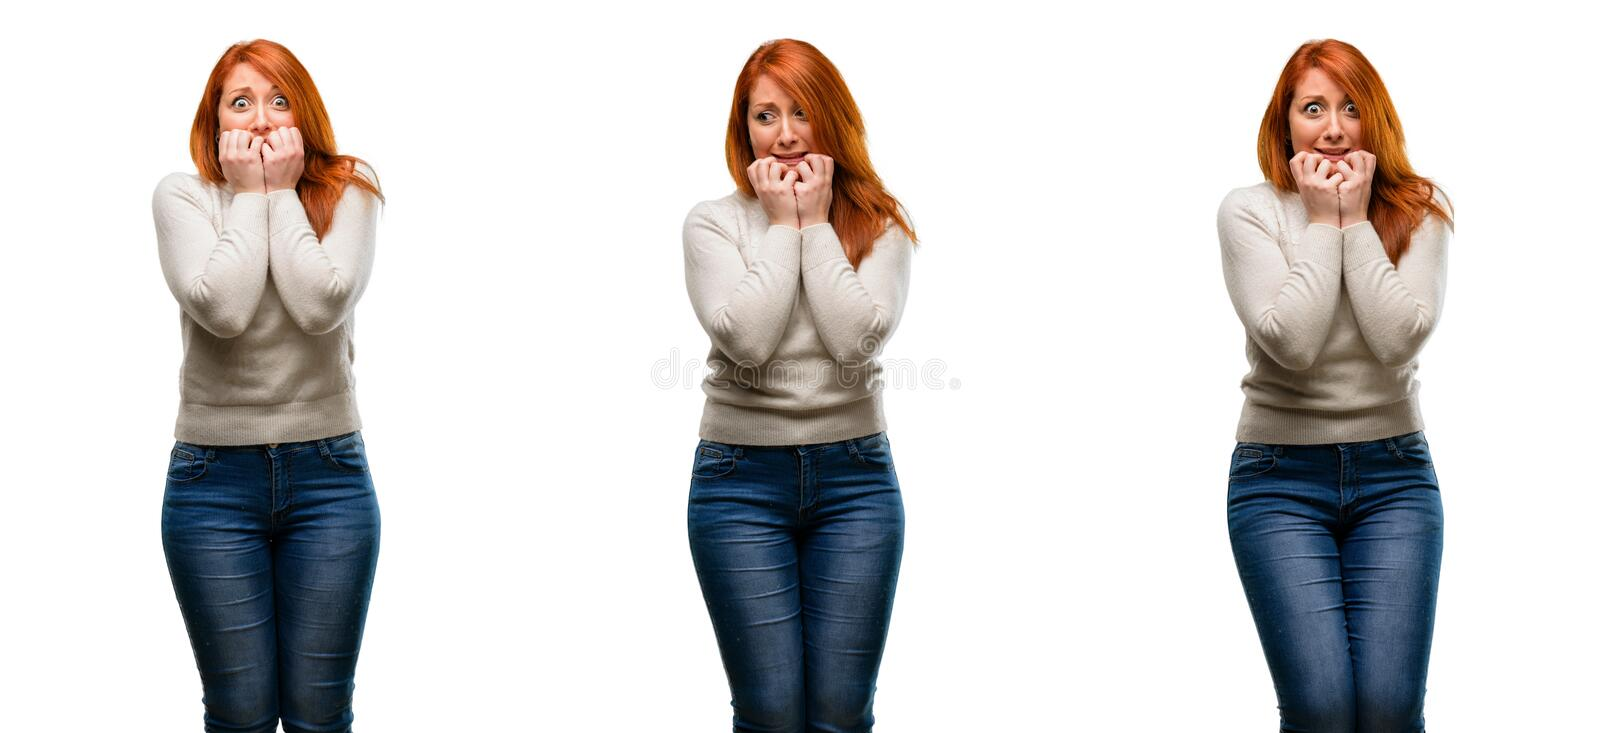 Young beautiful redhead woman isolated over white background royalty free stock photos